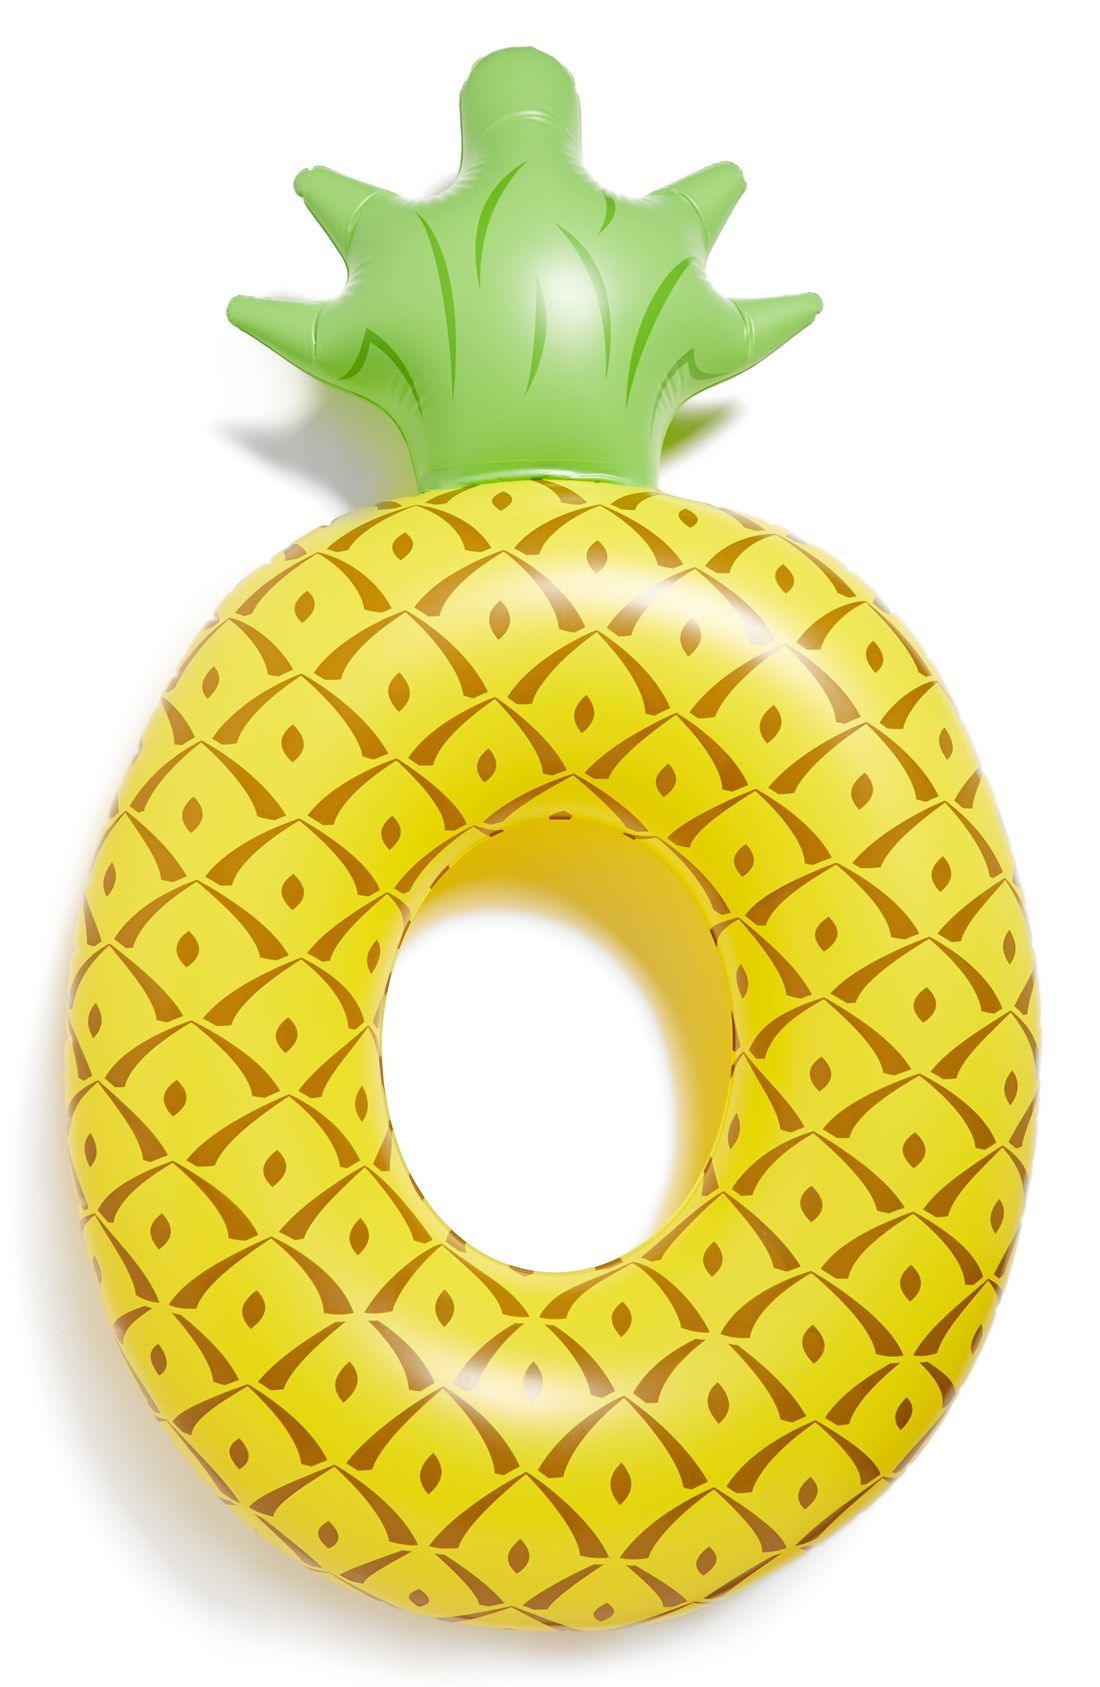 Large Pineapple Pool Float is part of Pineapple pool float, Pool floats, Pool floaties, Pineapple, Pool float, Pineapple parties - Get to your tropical happyplace faster when lazing on this huge pineappleshaped pool float made from heavyduty vinyl perfect for horseplay